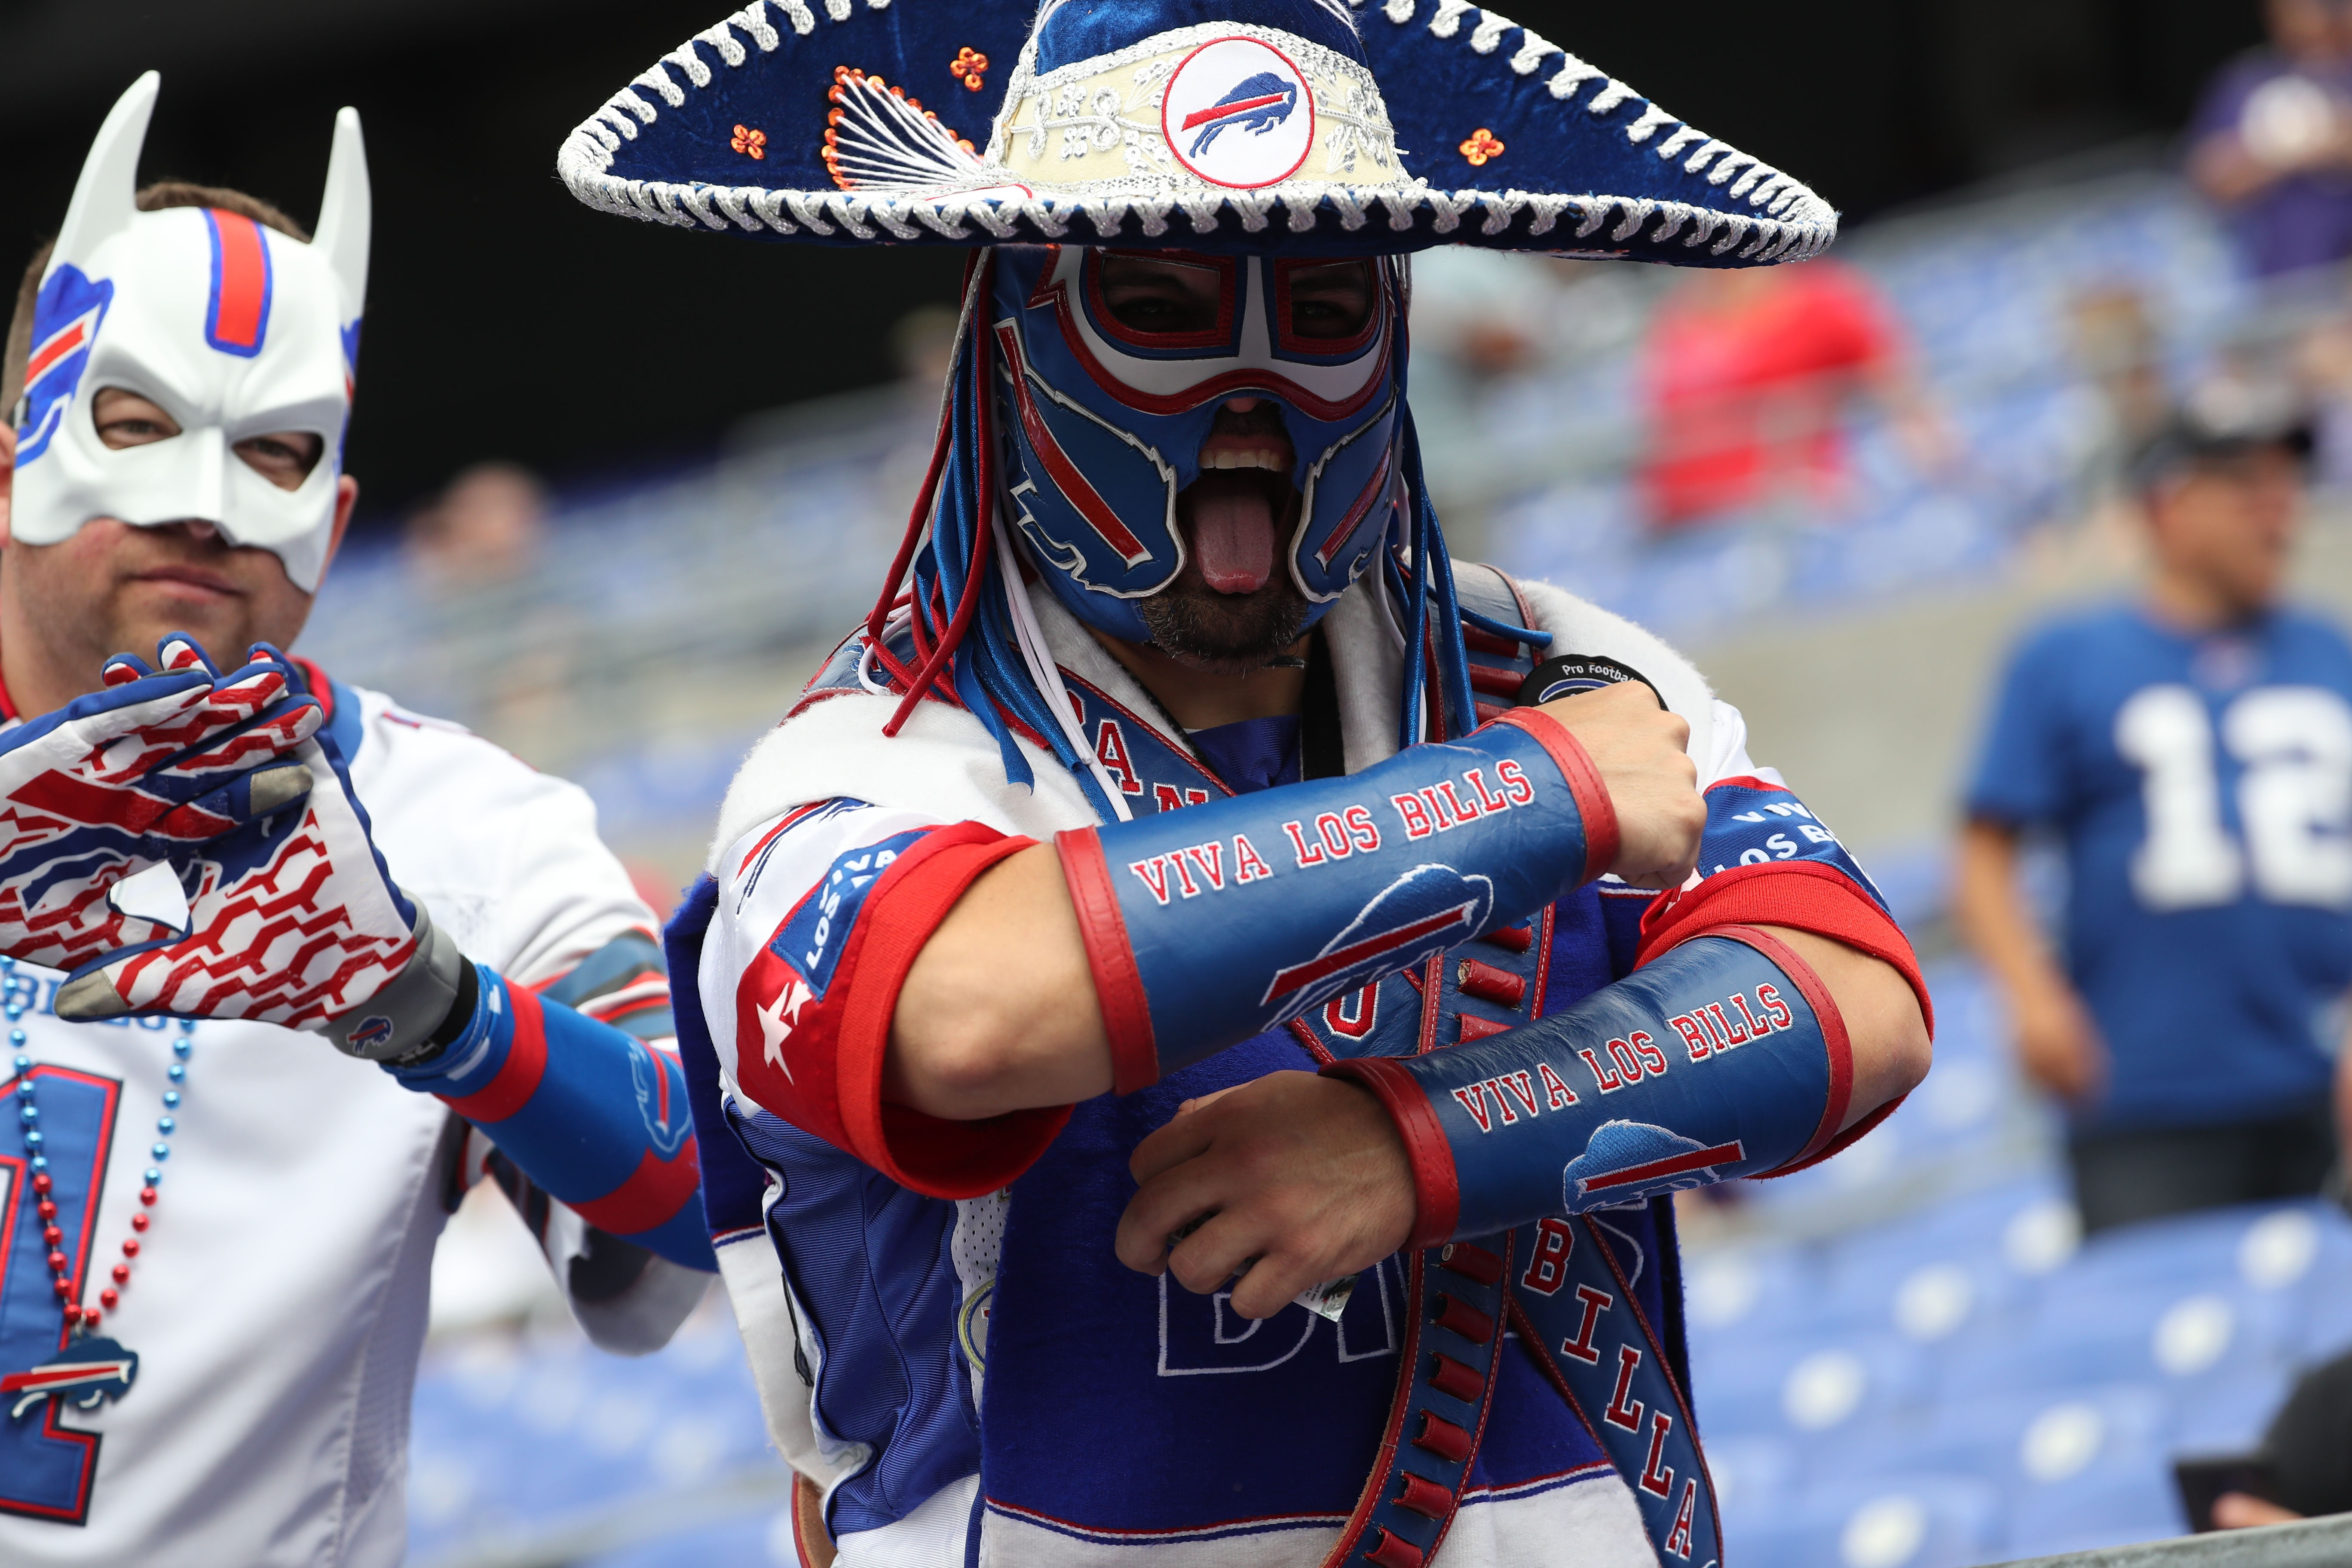 Bills fans during warm ups at M&T Bank Stadium in Baltimore,MD on Friday, Sept. 11,2016.  (James P. McCoy/ Buffalo News)